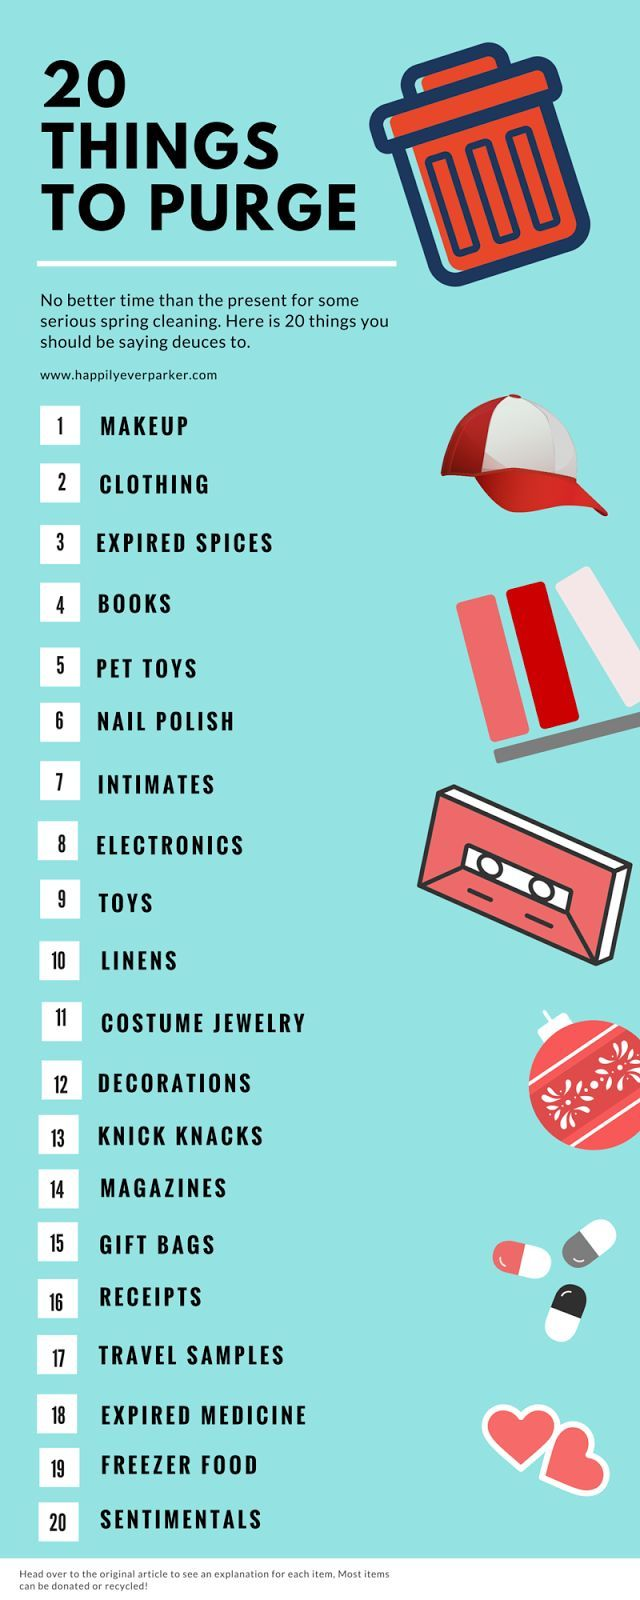 Happily Ever Parker: 20 Things to Purge, organize, organization, cleaning tips, sp